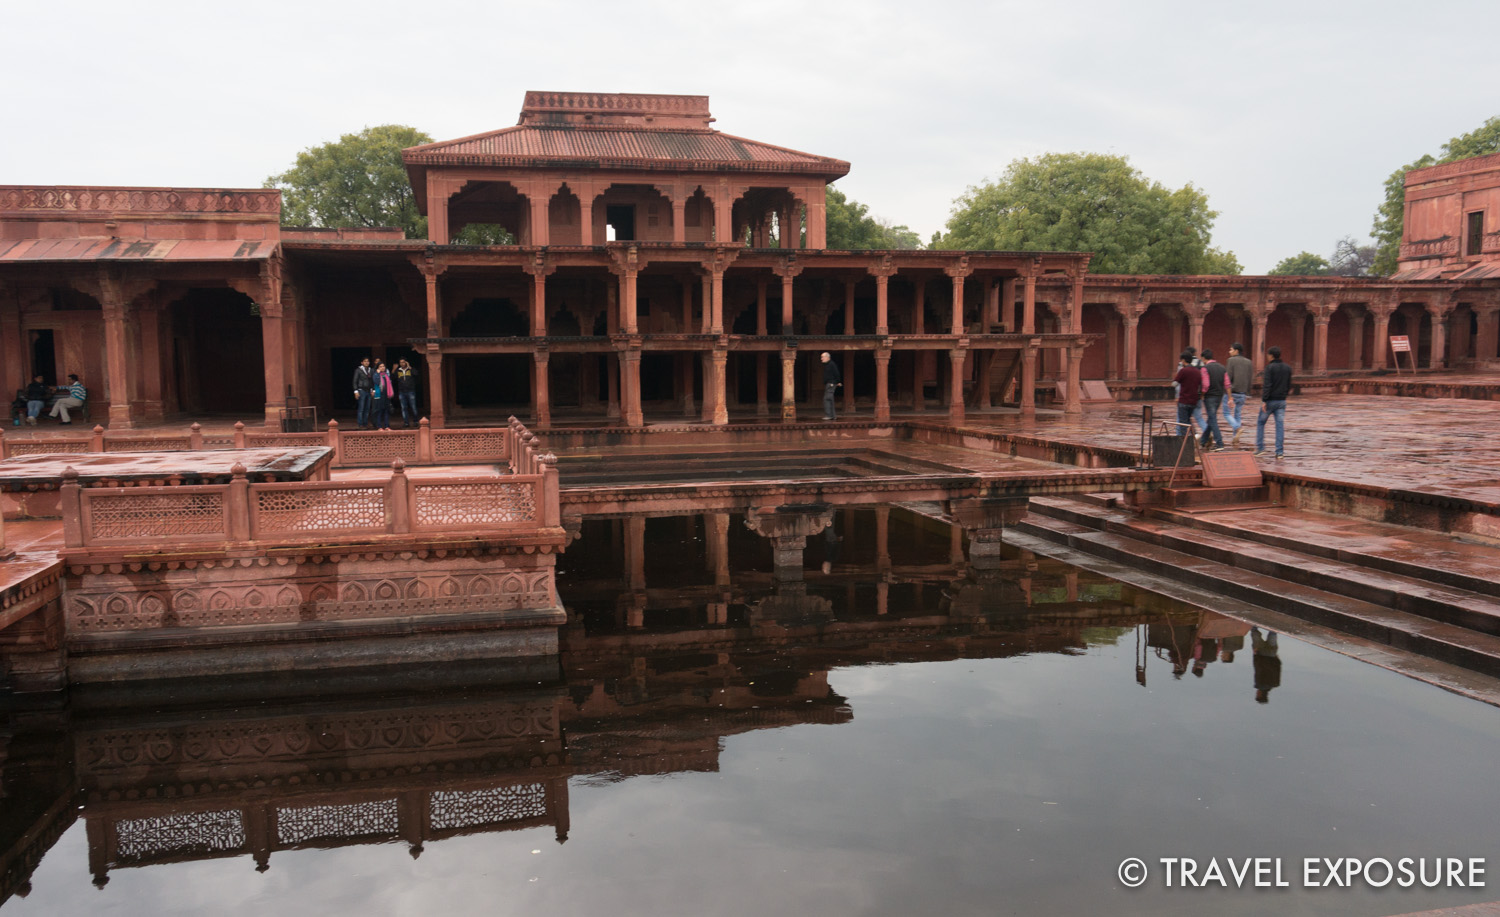 At Fatehpur Sikri city, the now deserted former capital of the Mughals